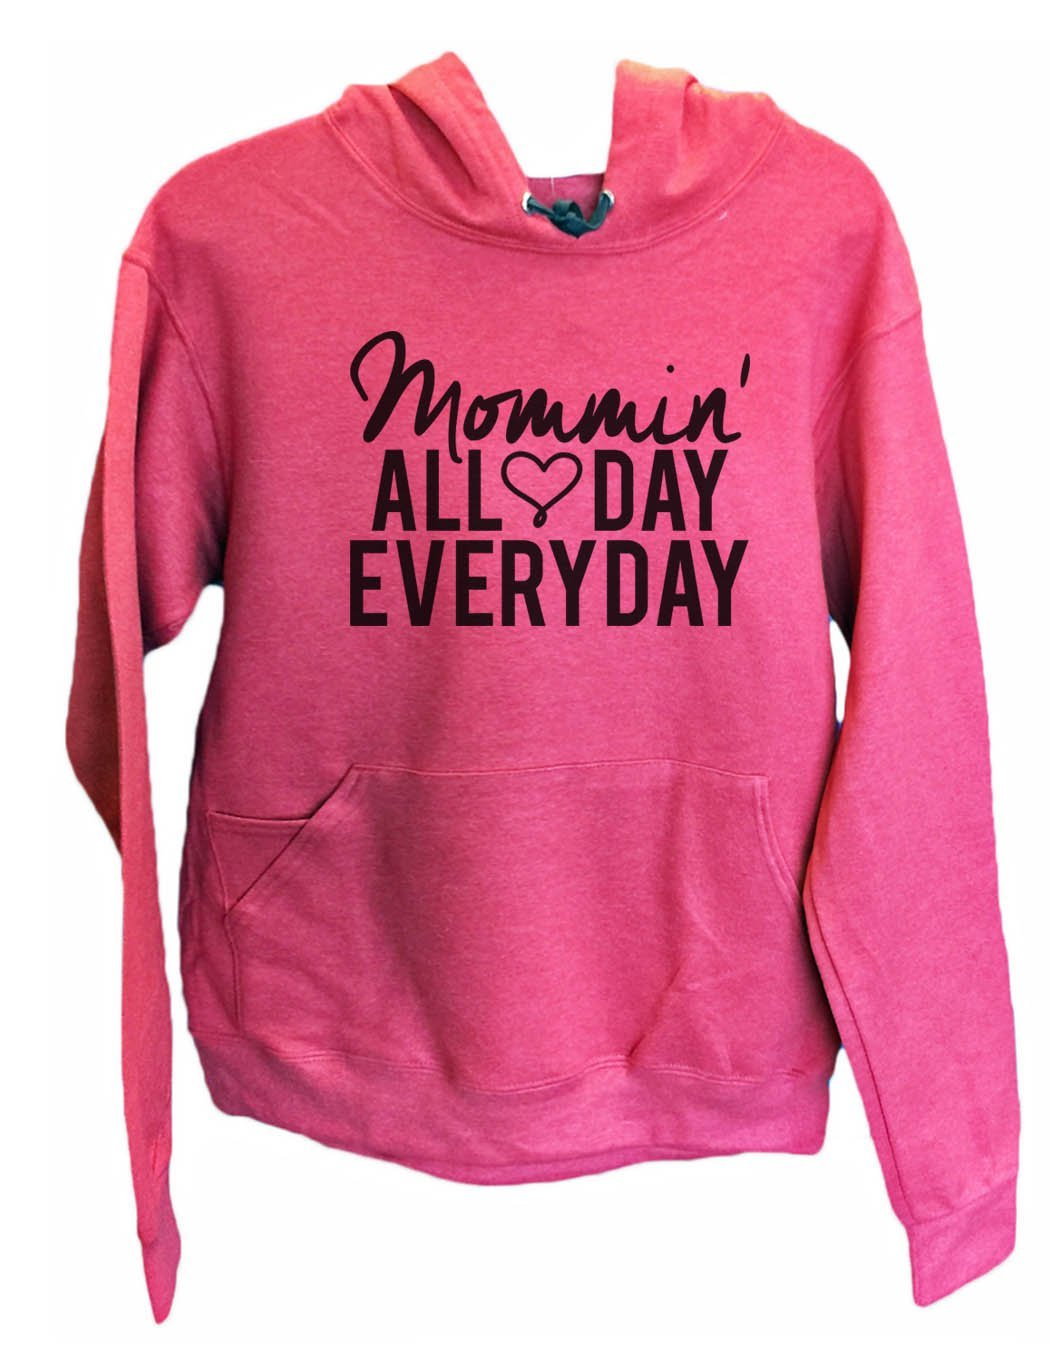 UNISEX HOODIE - Mommin' All Day Every Day - FUNNY MENS AND WOMENS HOODED SWEATSHIRTS - 2143 Funny Shirt